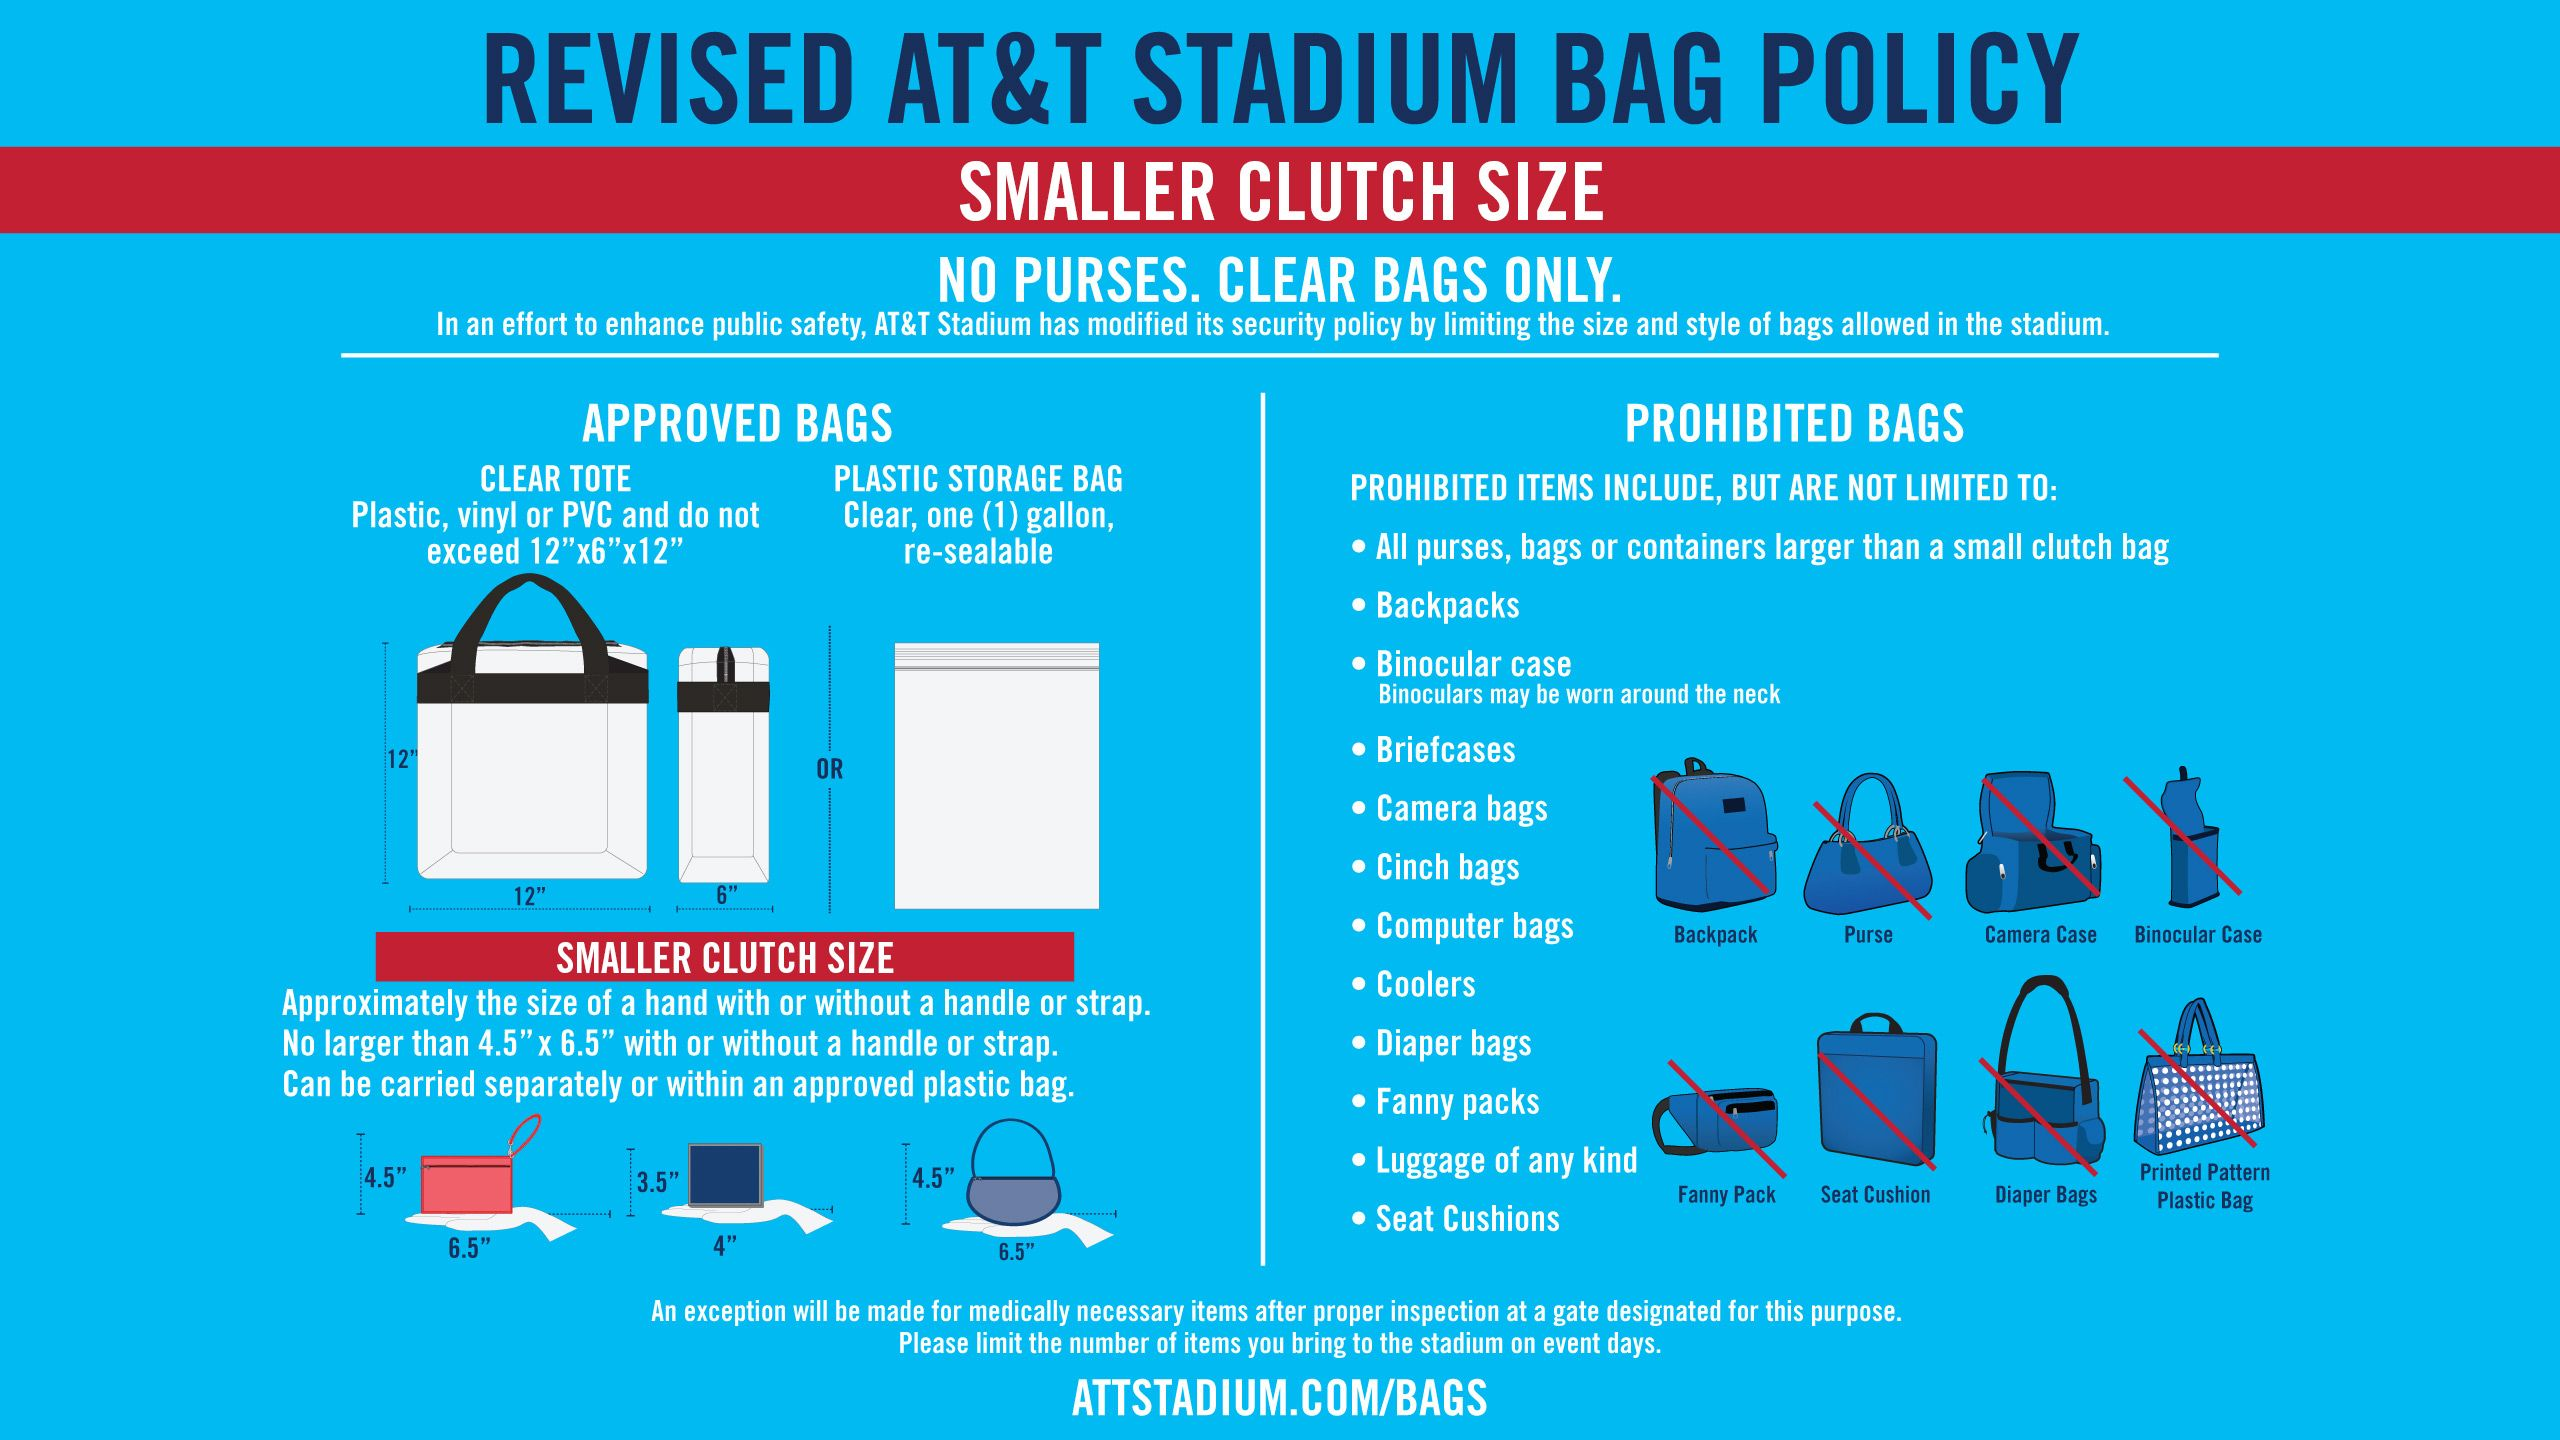 AT&T Stadium Bag Policy